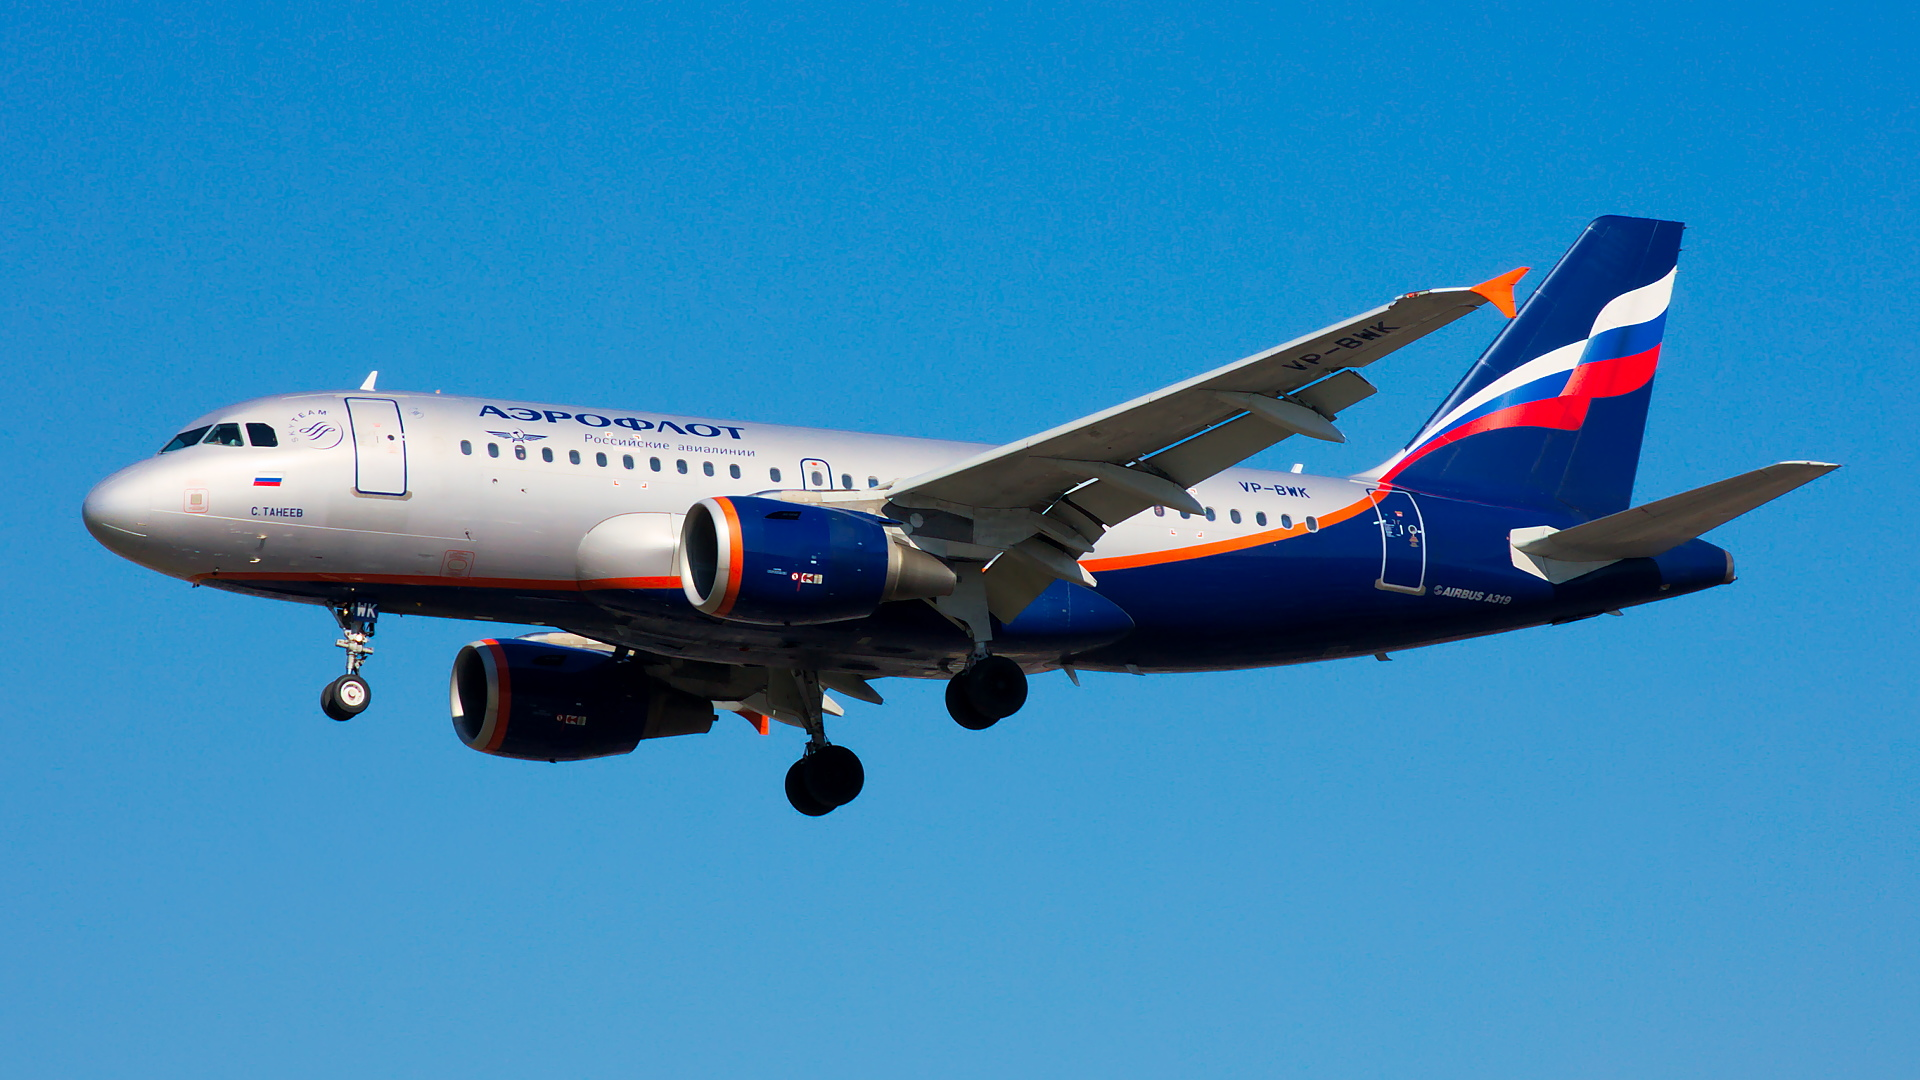 VP-BWK ✈ Aeroflot Russian Airlines Airbus A319-111 @ London-Heathrow